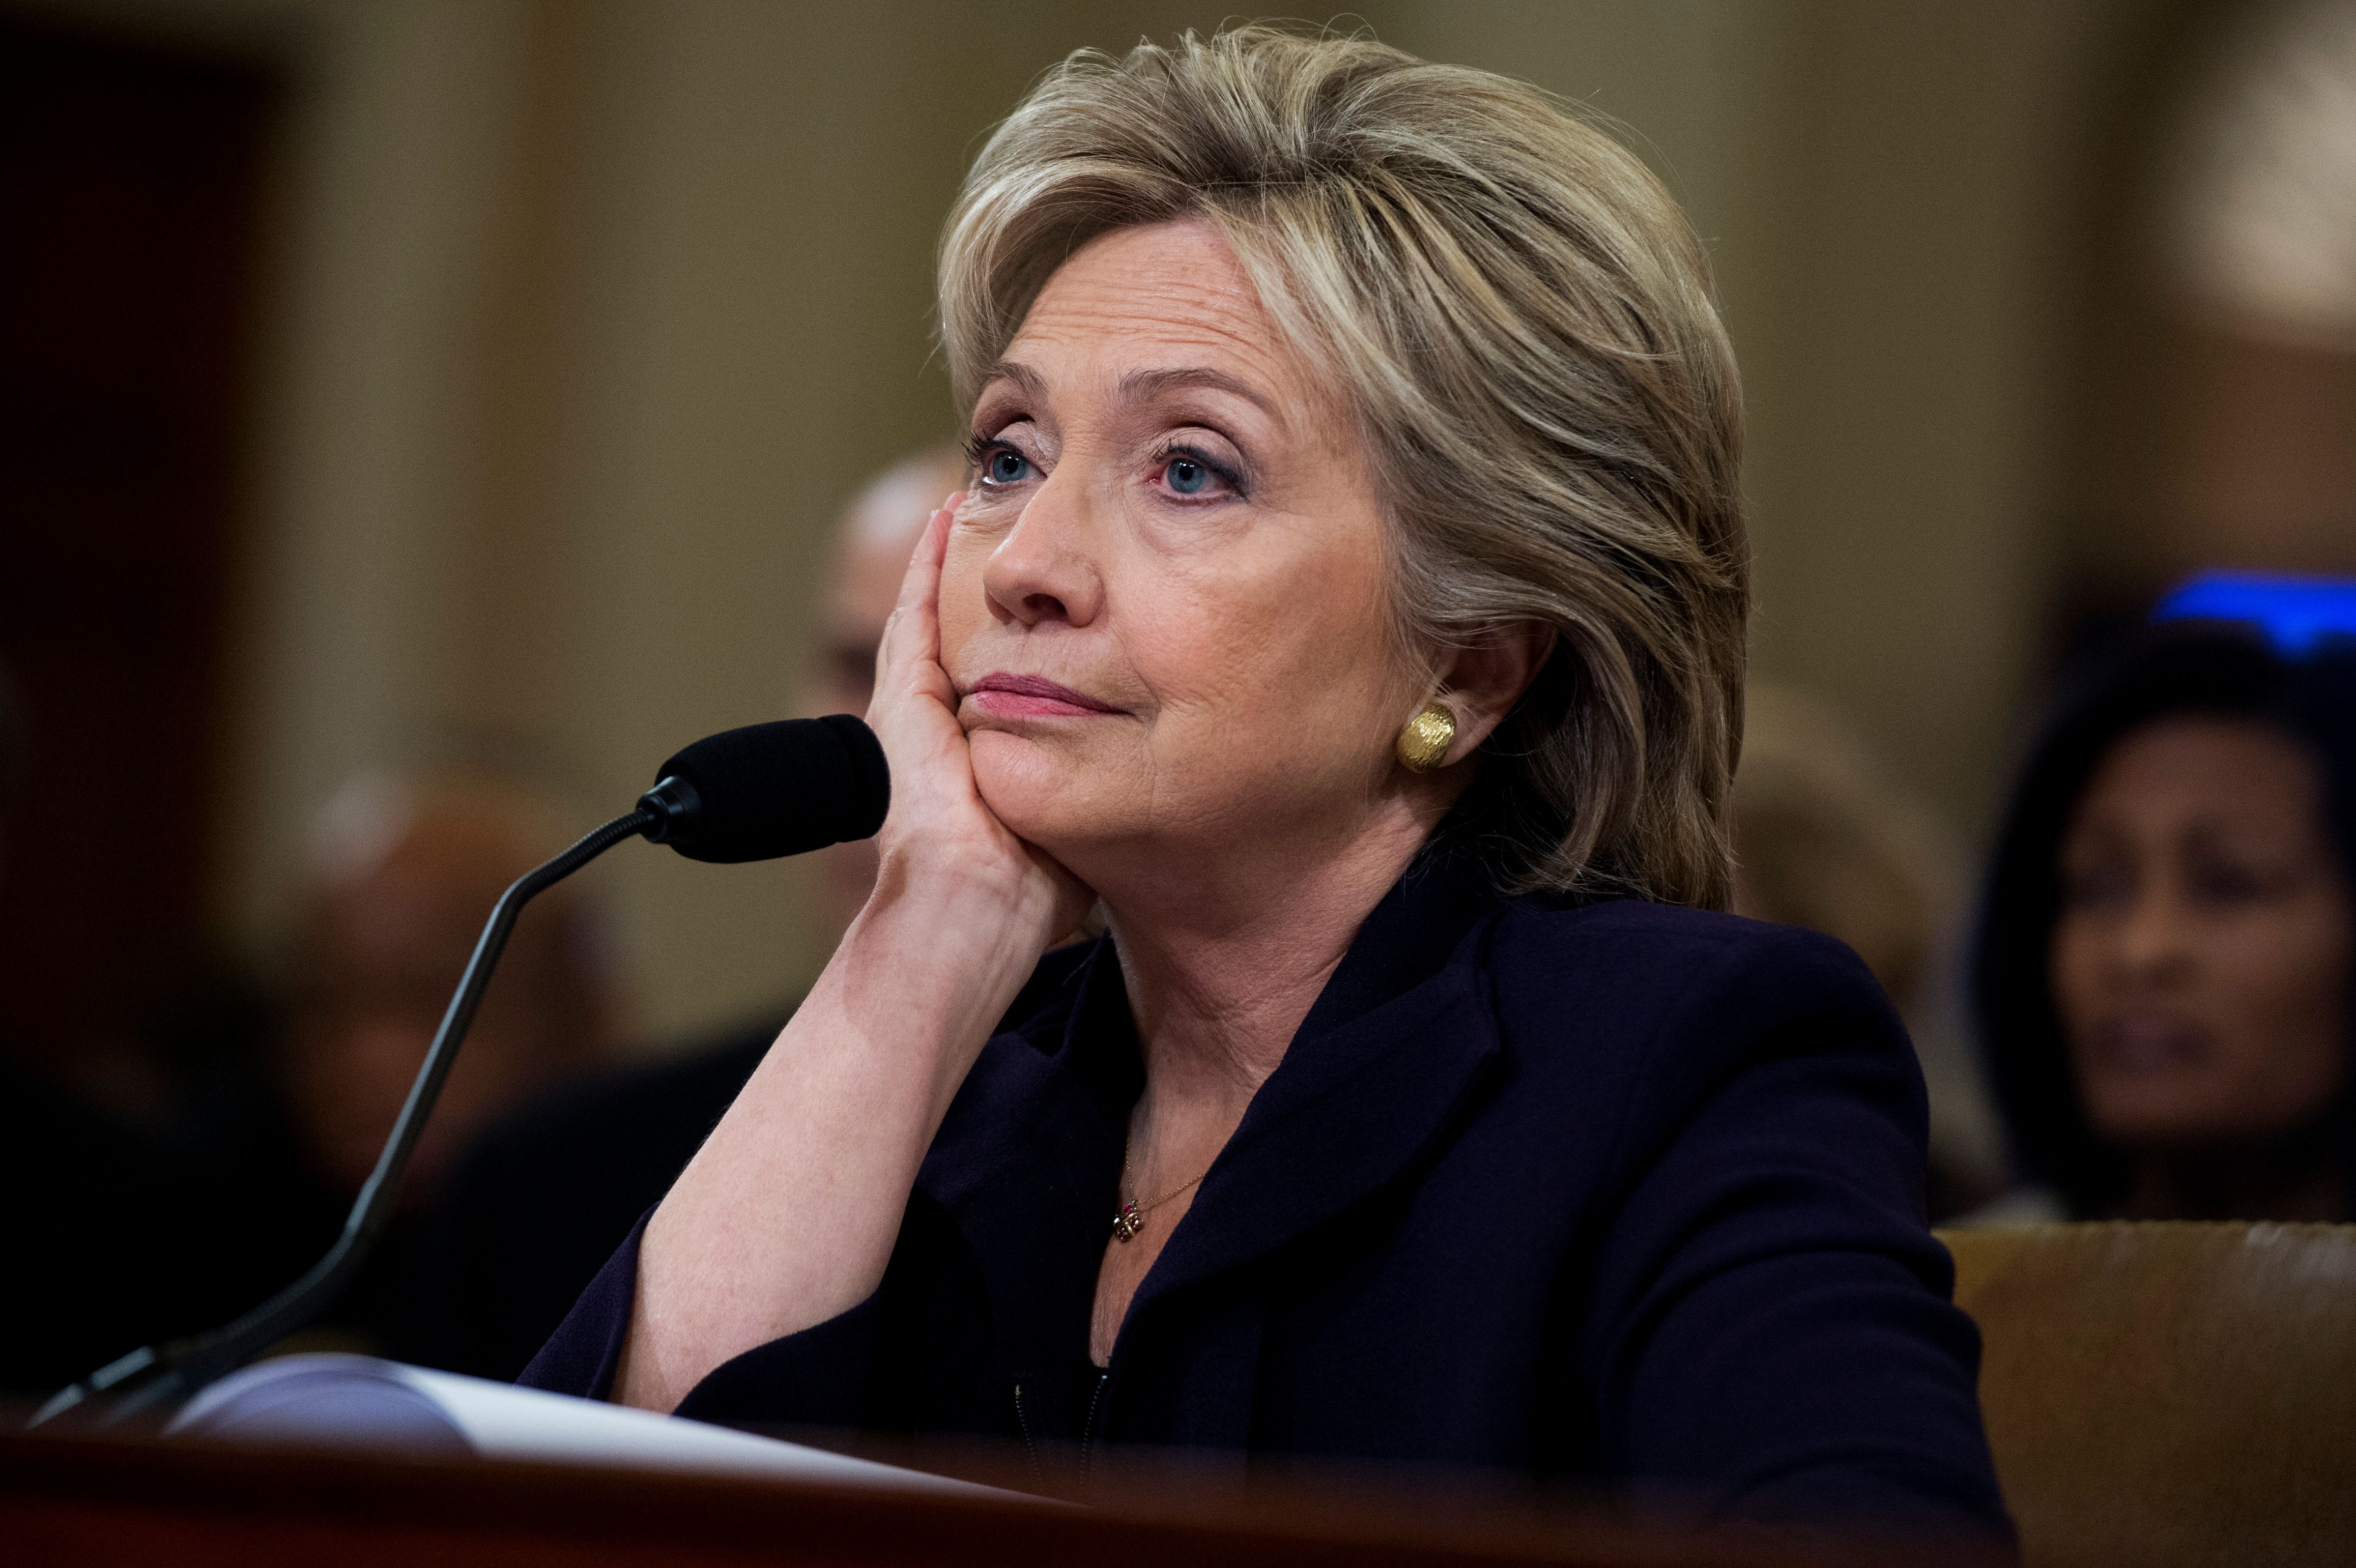 UNITED STATES - OCTOBER 22: Former Secretary of State Hillary Clinton testifies during a House Select Committee on Benghazi hearing in Longworth Building, October 22, 2015. The 2012 attacks in Benghazi, Libya, took the lives of four Americans including U.S. Ambassador Chris Stevens. (Photo By Tom Williams/CQ Roll Call)